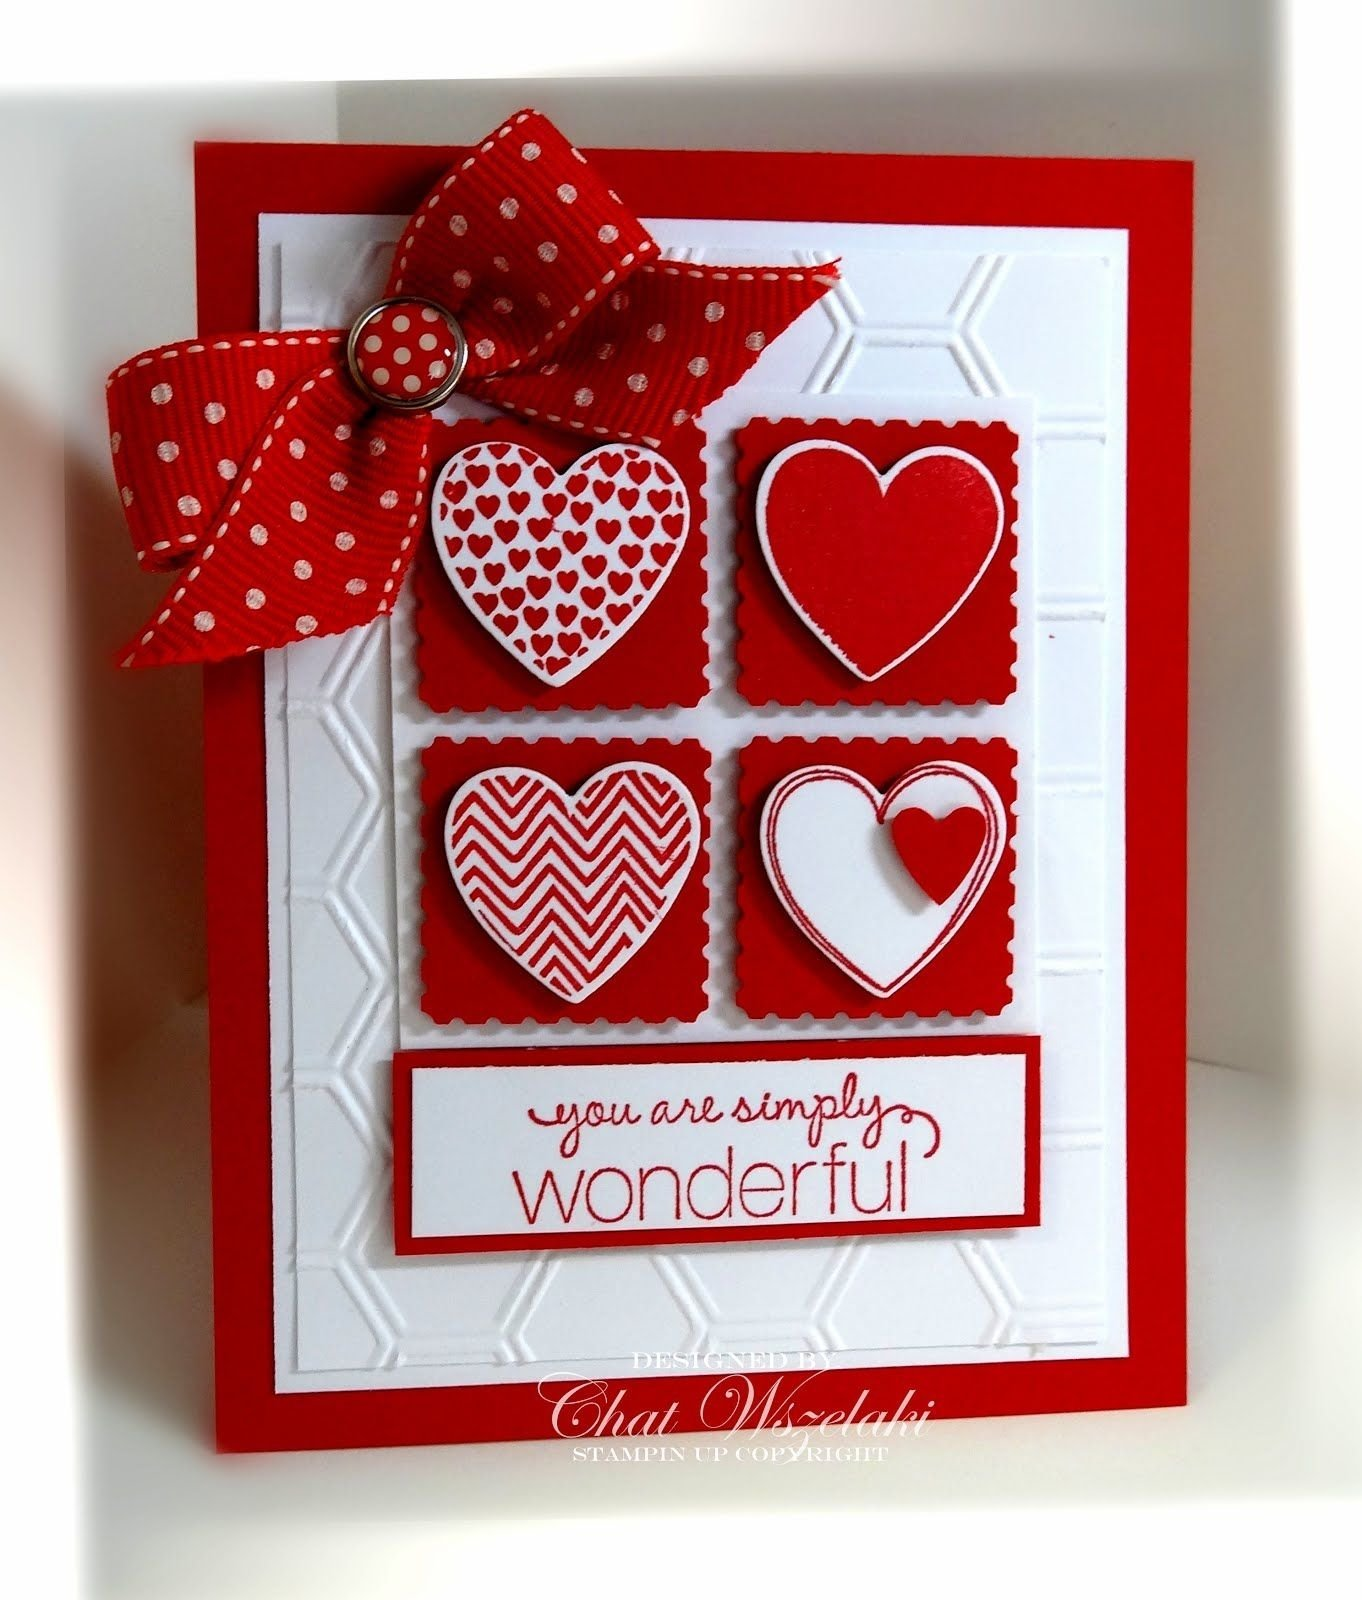 10 Fashionable Stampin Up Valentine Card Ideas hearts a flutter cards squares and card ideas 2020